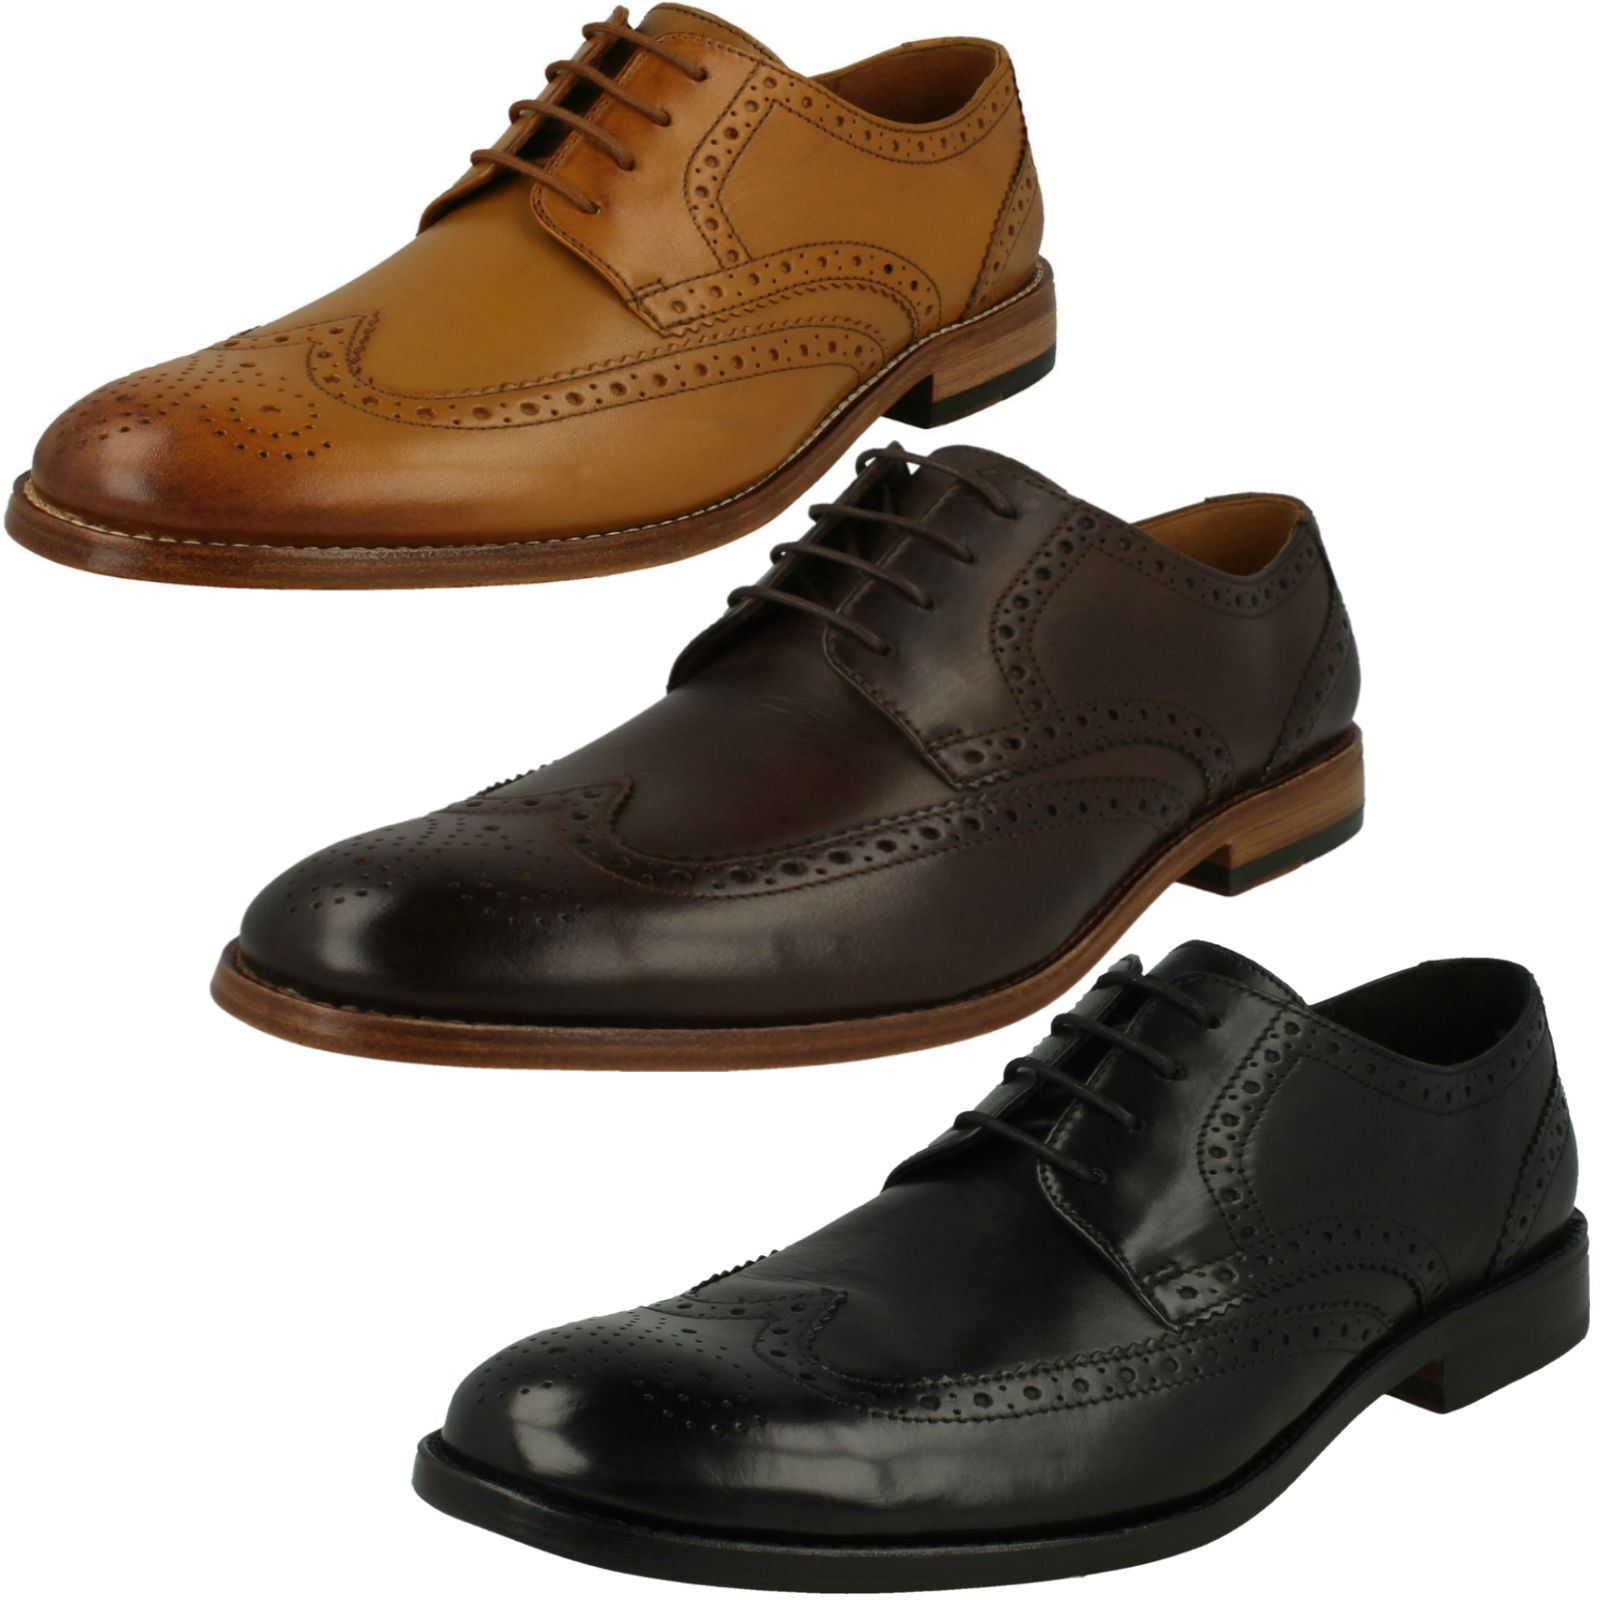 065fd52a55c02 Mens Clarks Formal Lace-Up Brogue Detailed James Wing shoes ...